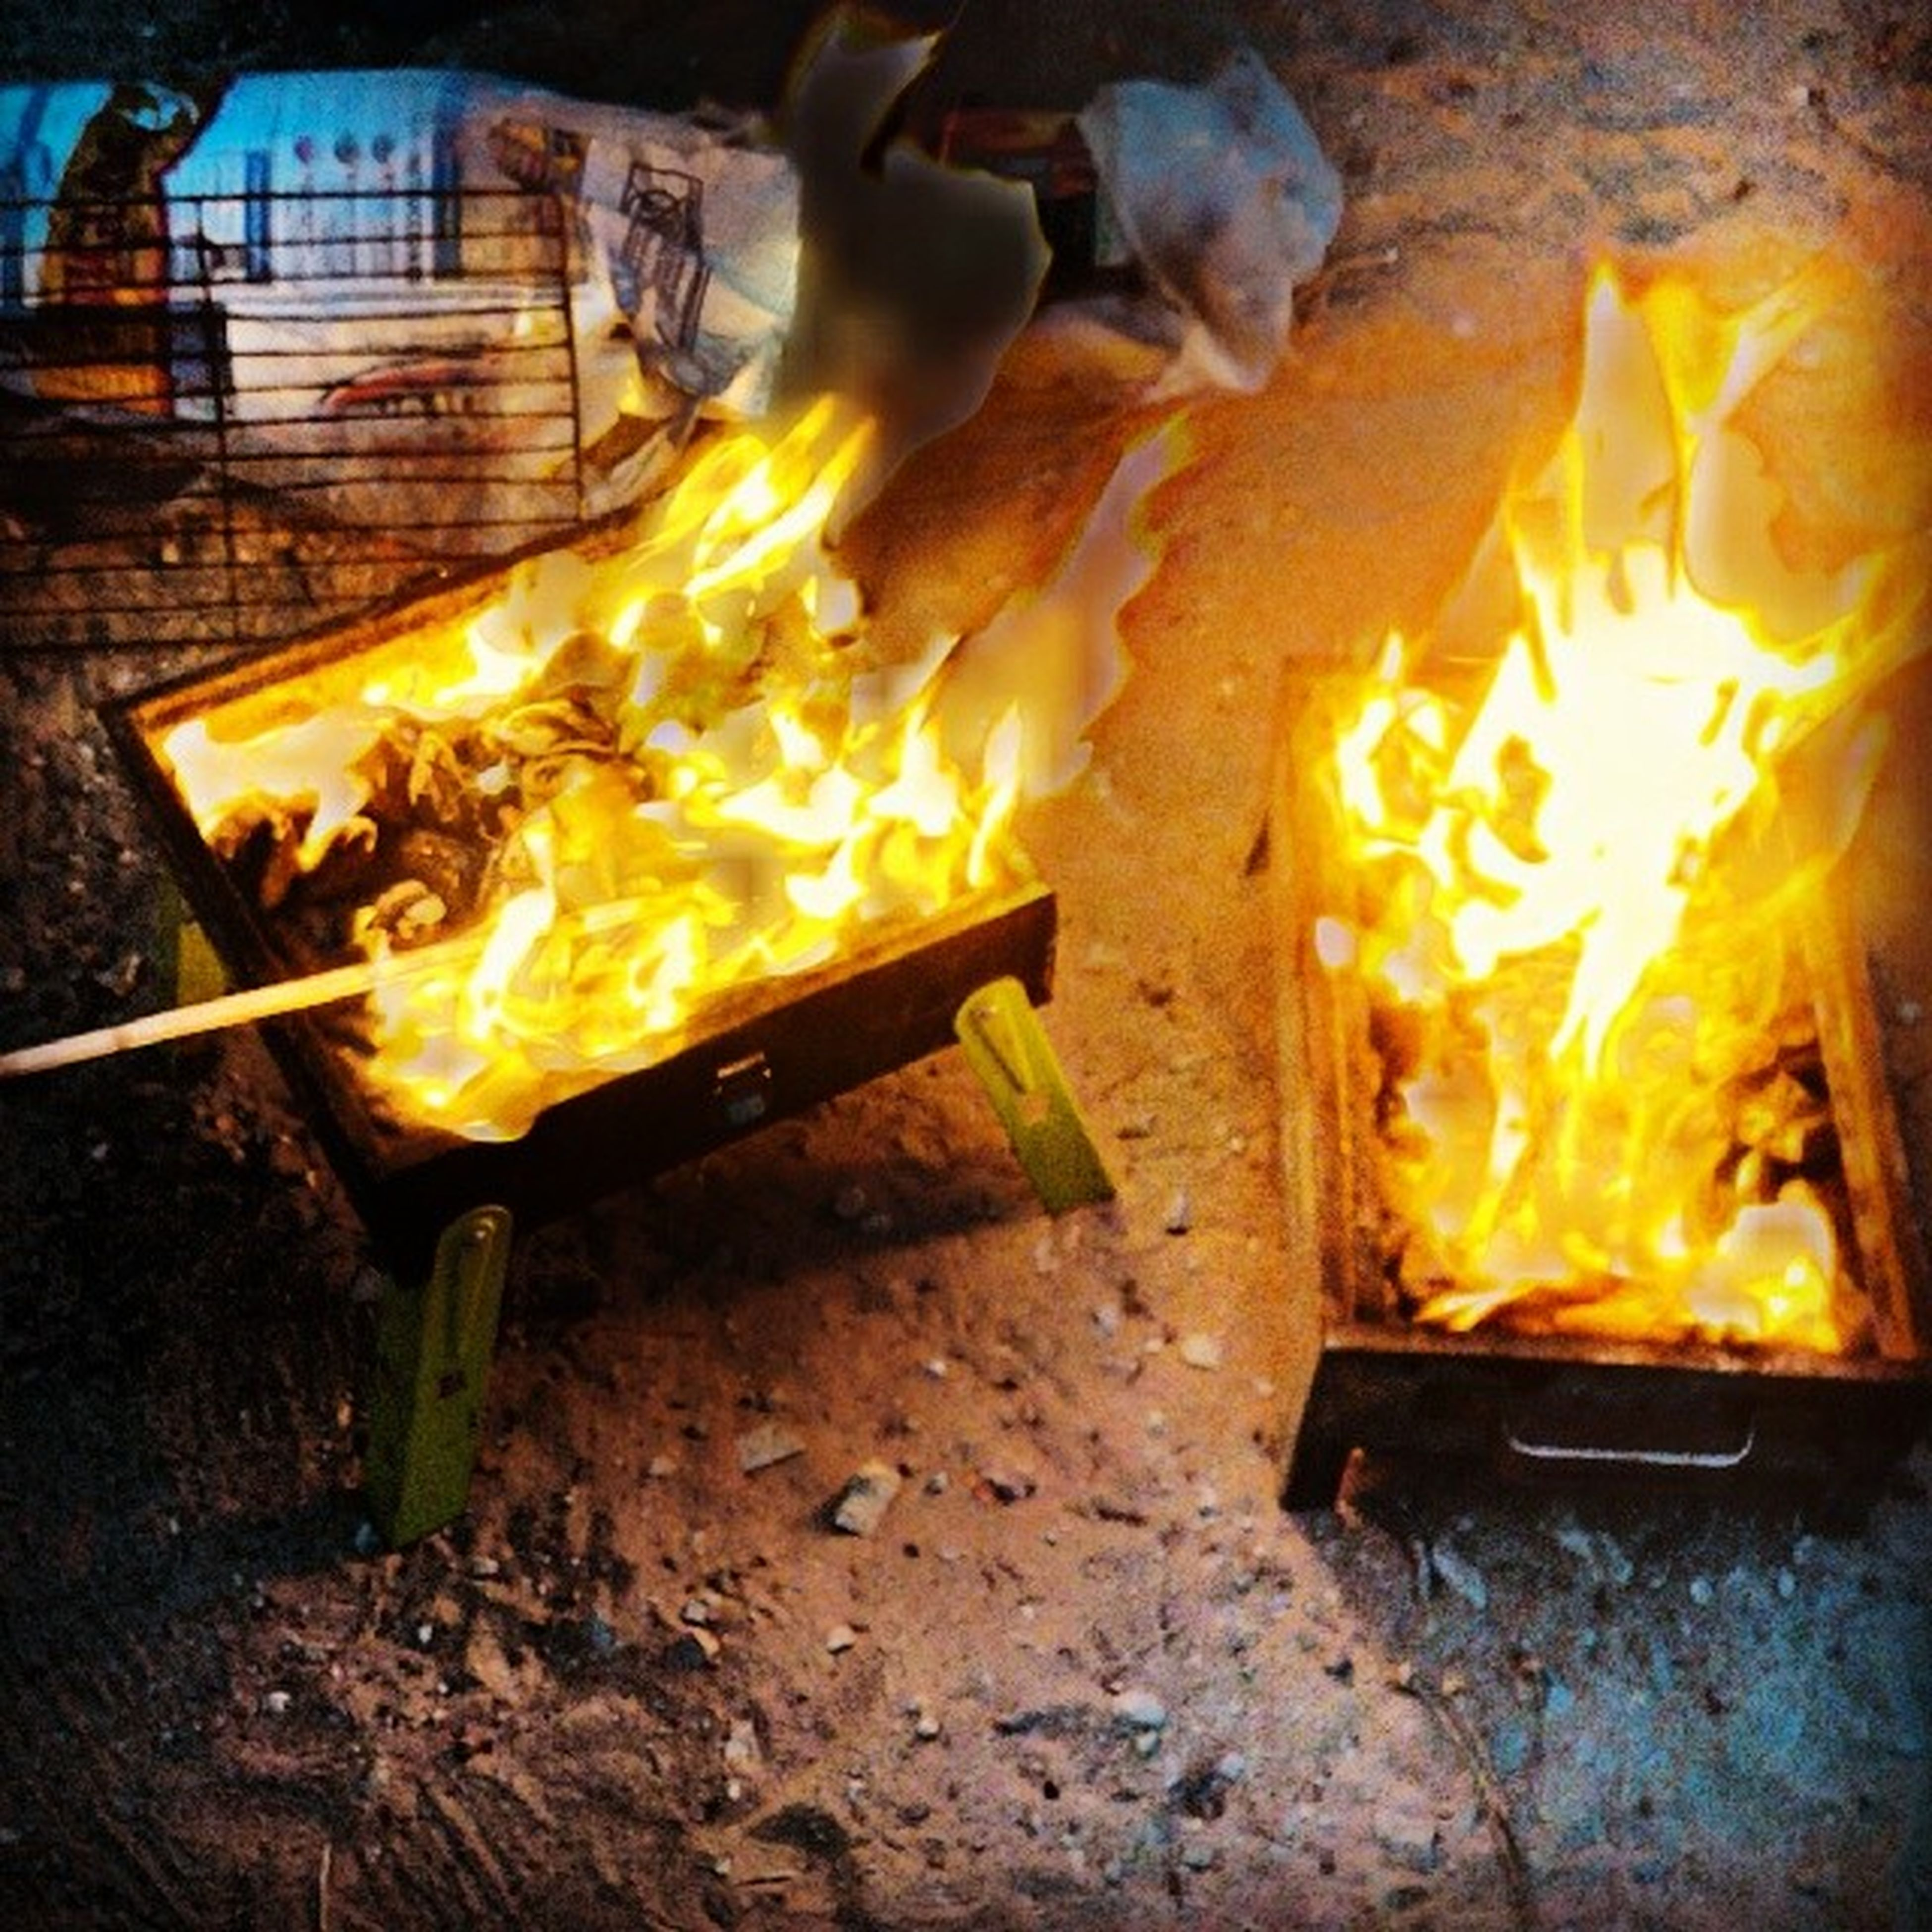 flame, burning, fire - natural phenomenon, heat - temperature, glowing, fire, indoors, night, firewood, close-up, illuminated, candle, orange color, heat, wood - material, bonfire, food, fireplace, food and drink, metal